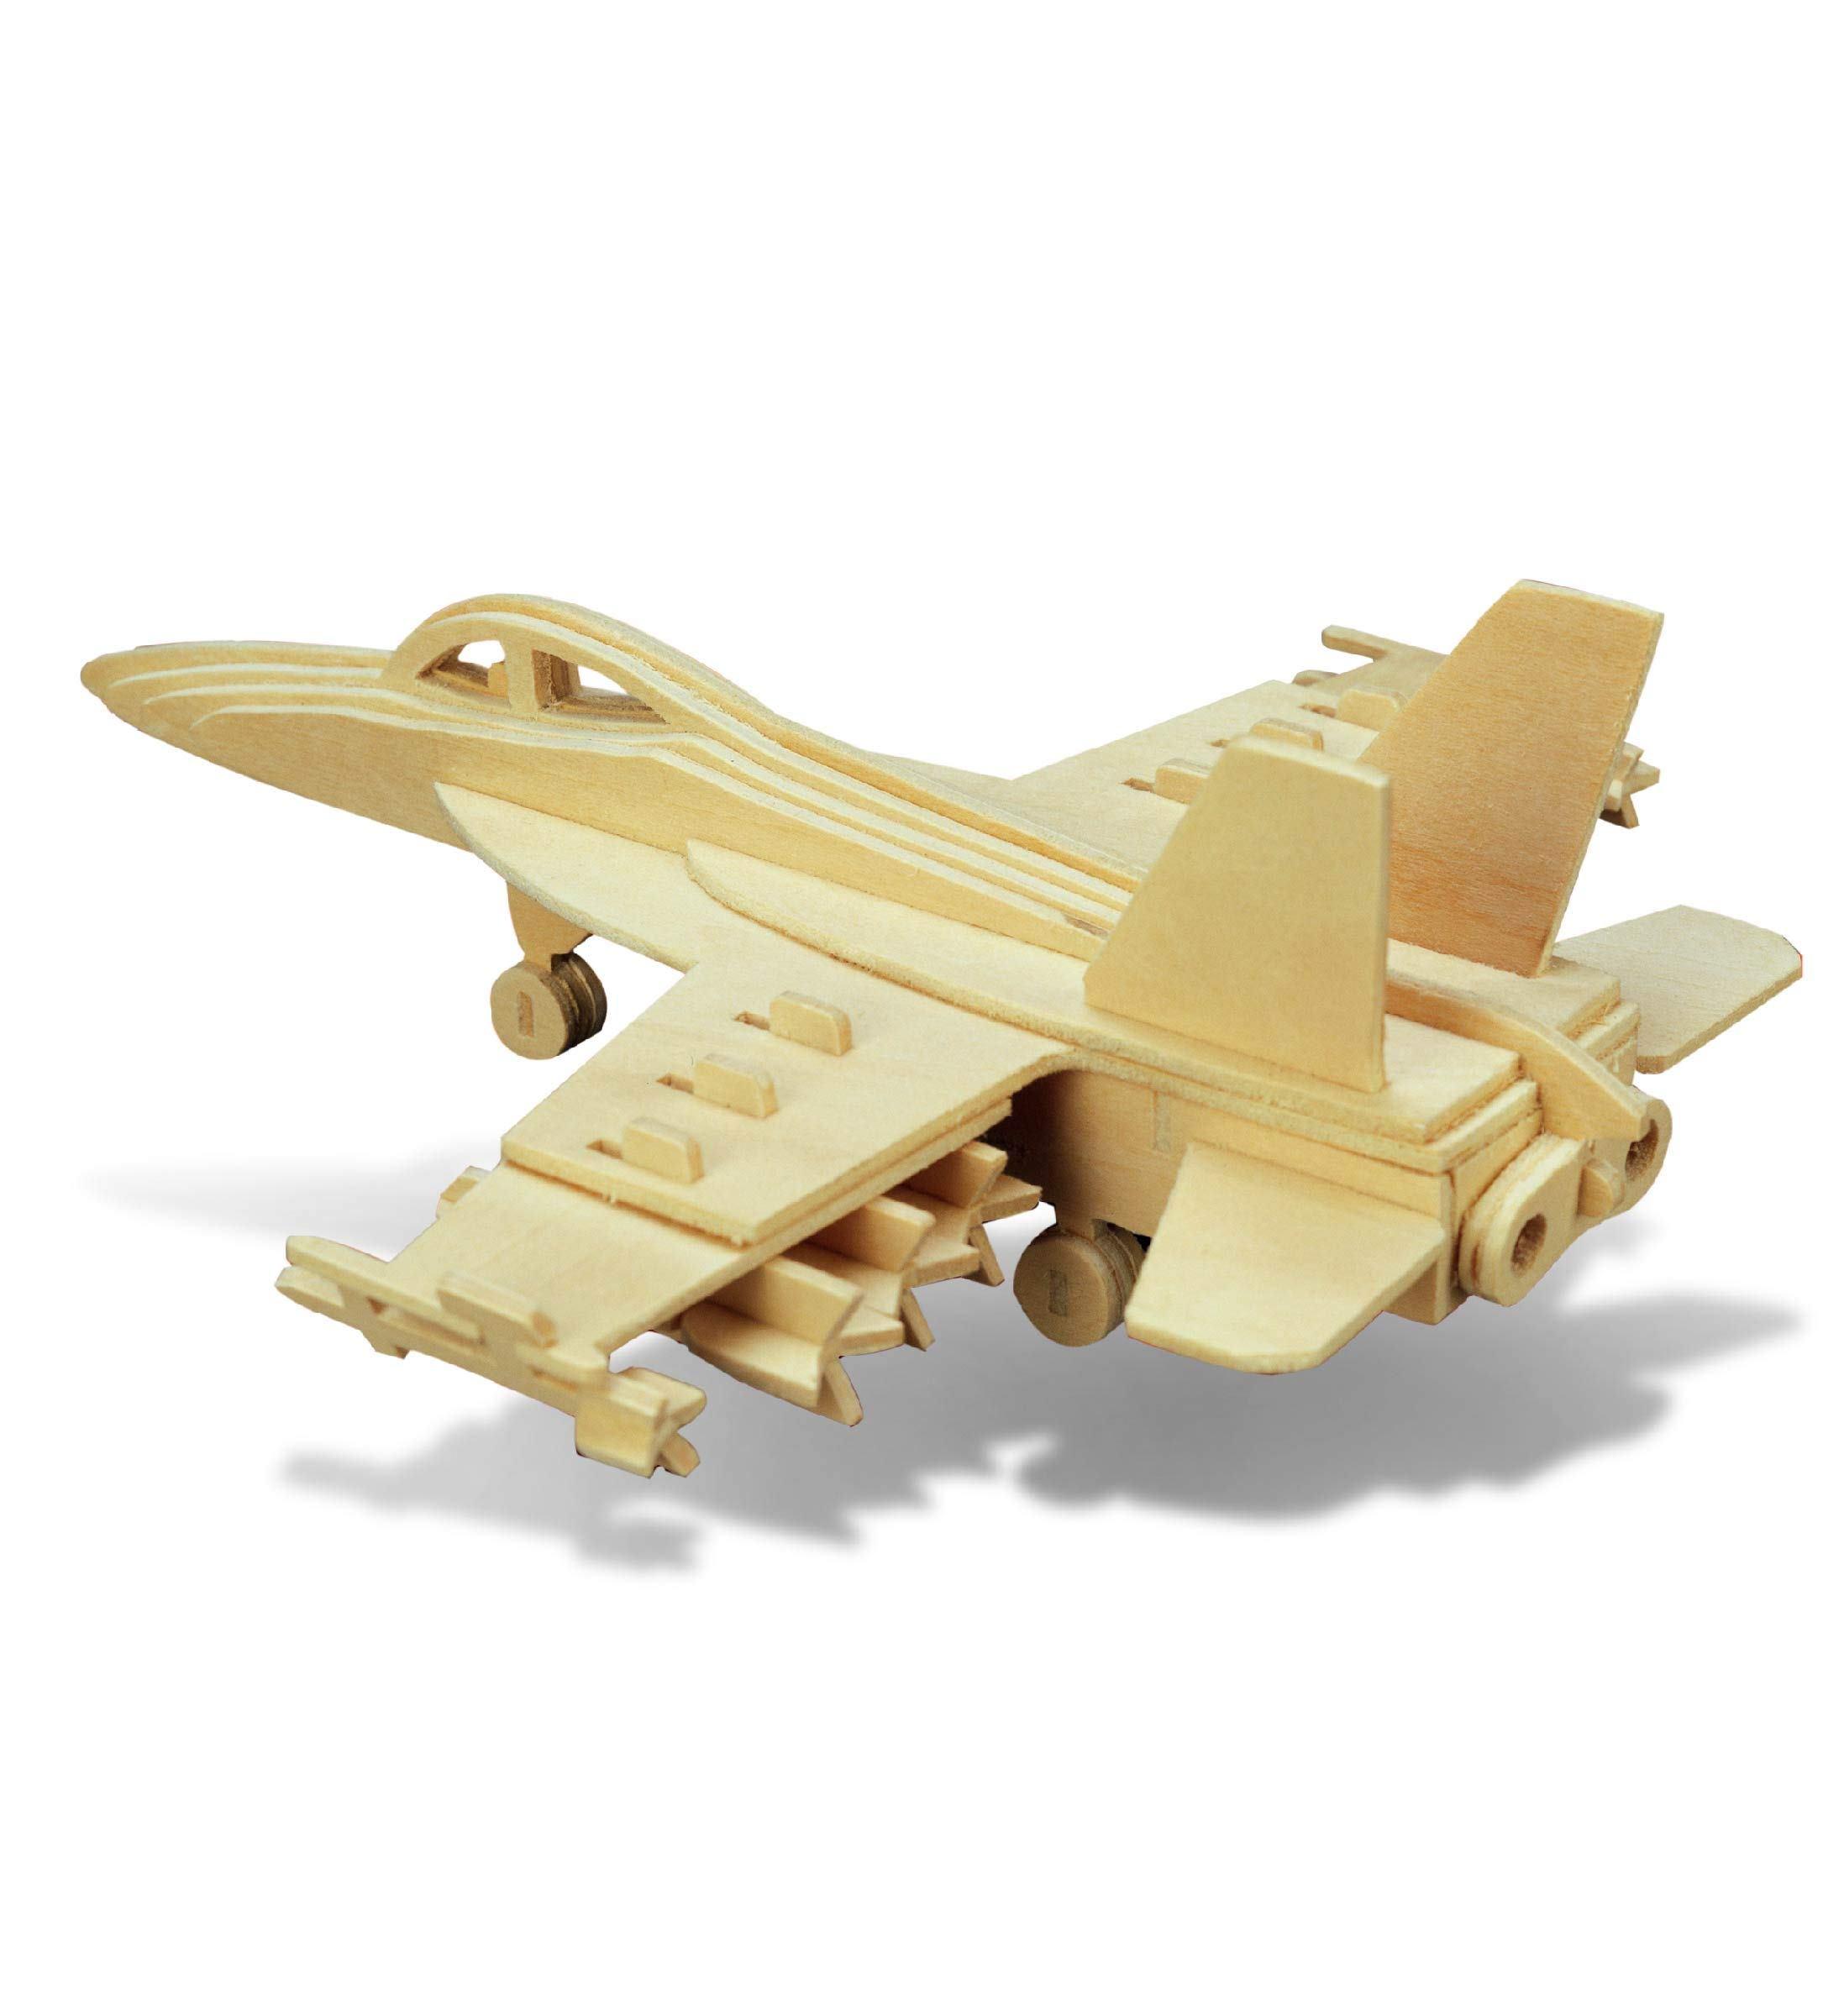 Puzzled 1239 F18 Hornet 3D Jigsaw Woodcraft Kit Puzzle, One Size, Tan (Pack of 47)